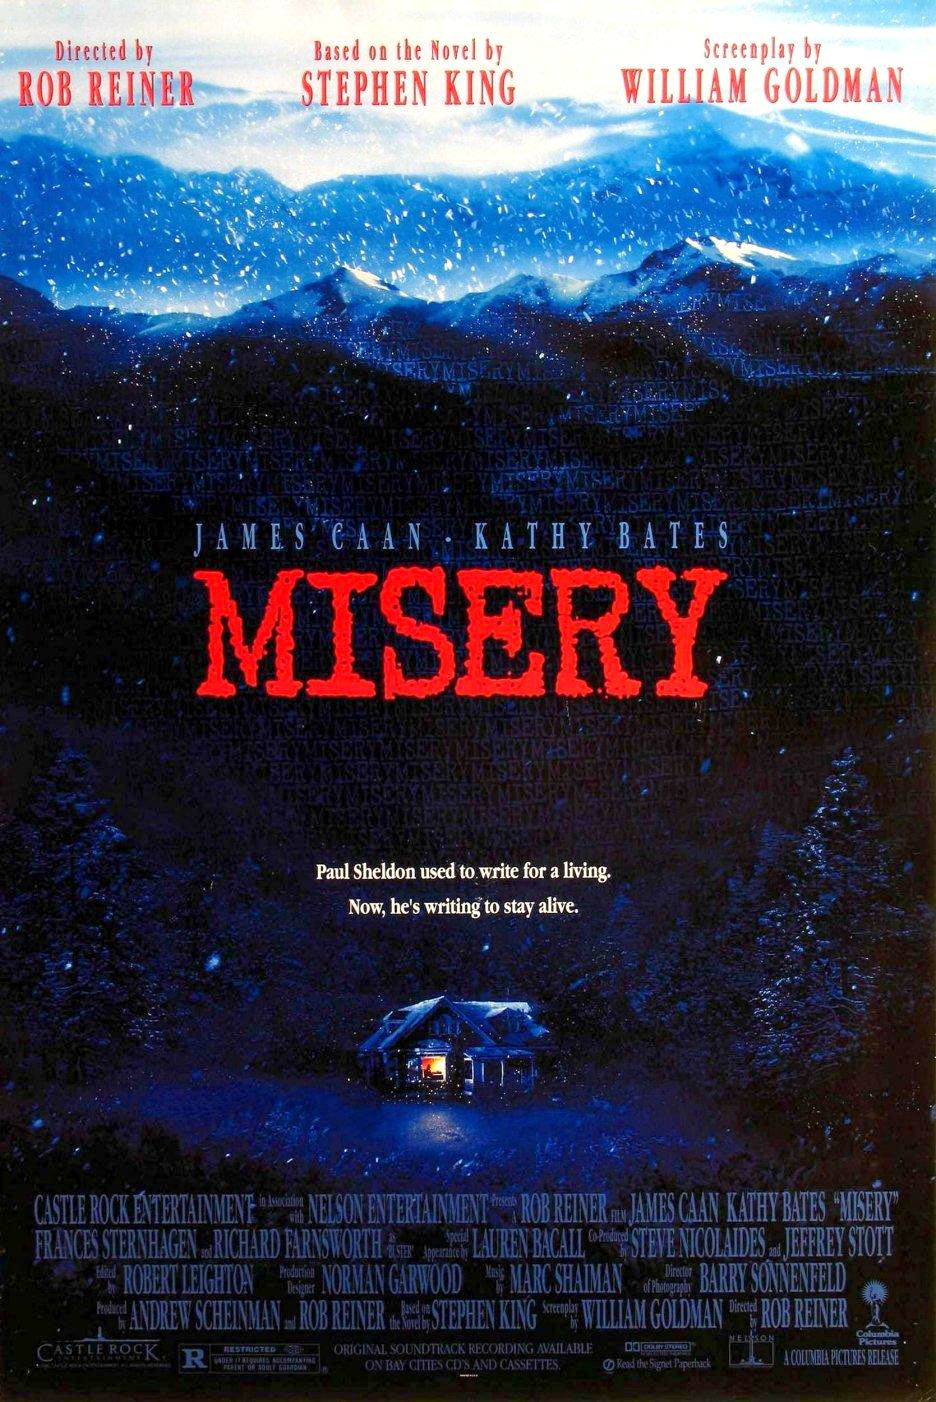 misery by stephen king Written by stephen king, narrated by lindsay crouse download the app and start listening to misery today - free with a 30 day trial keep your audiobook forever, even if you cancel.